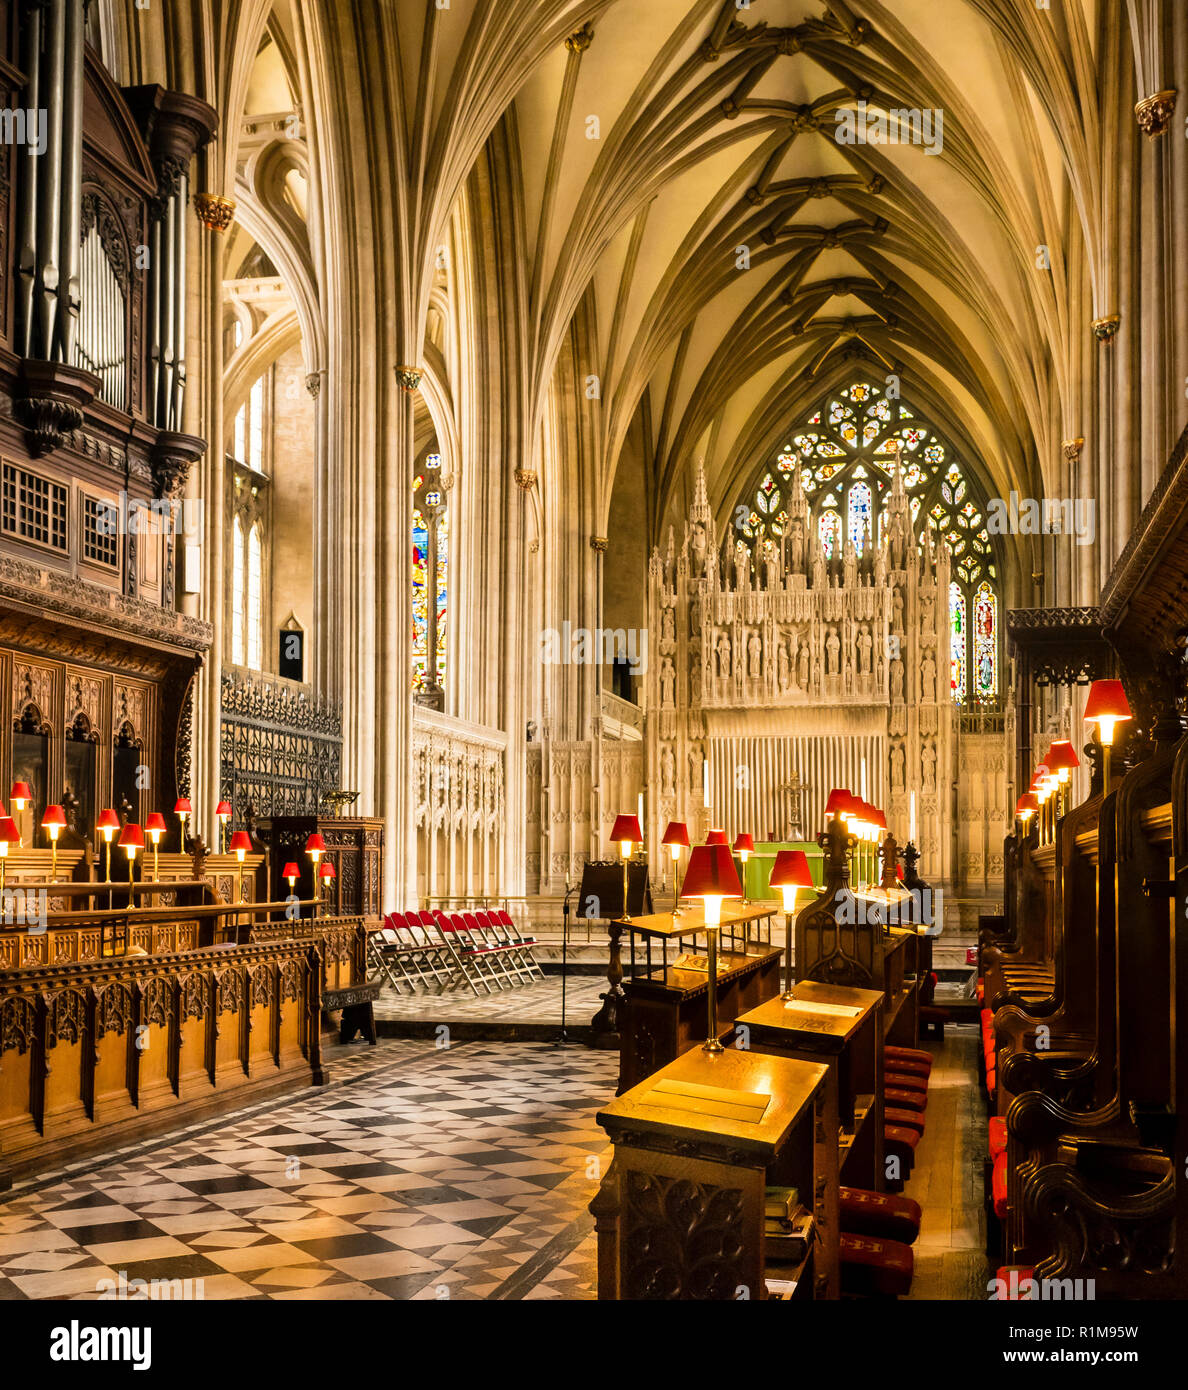 The Reredos, Alter, and Chancery of Bristol Cathedral Stock Photo